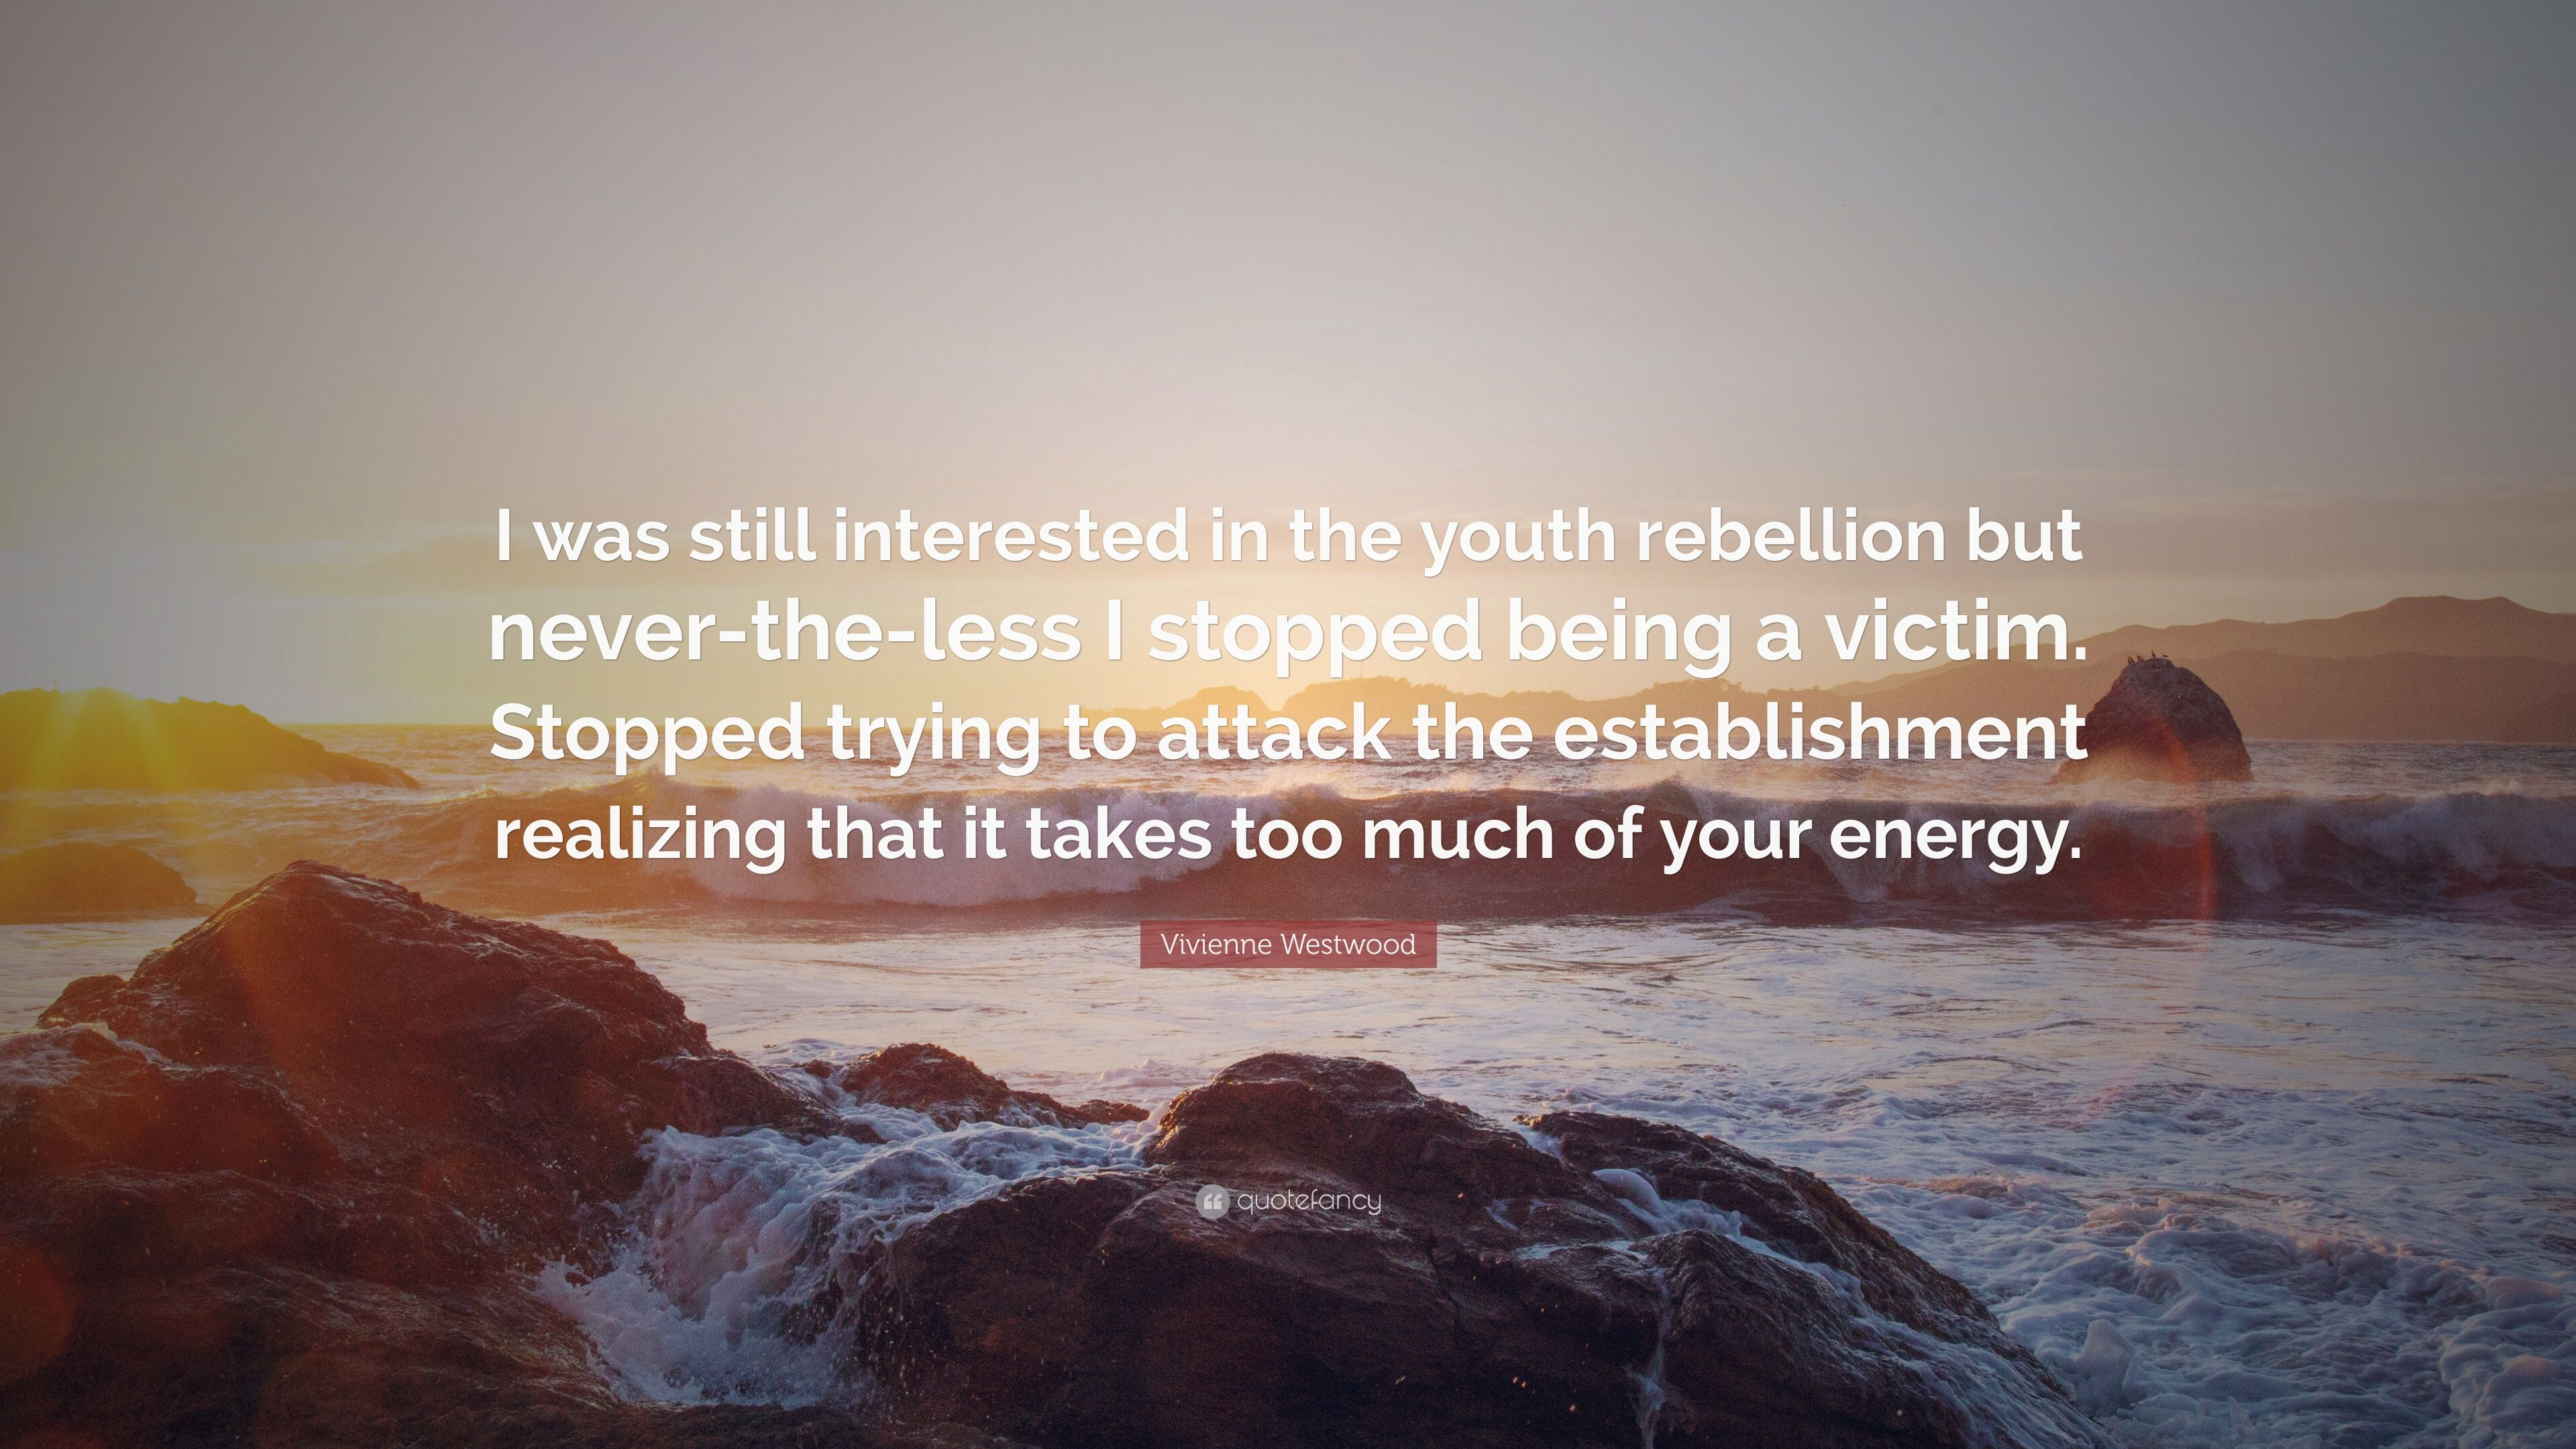 vivienne westwood quote i was still interested in the youth rebellion but never